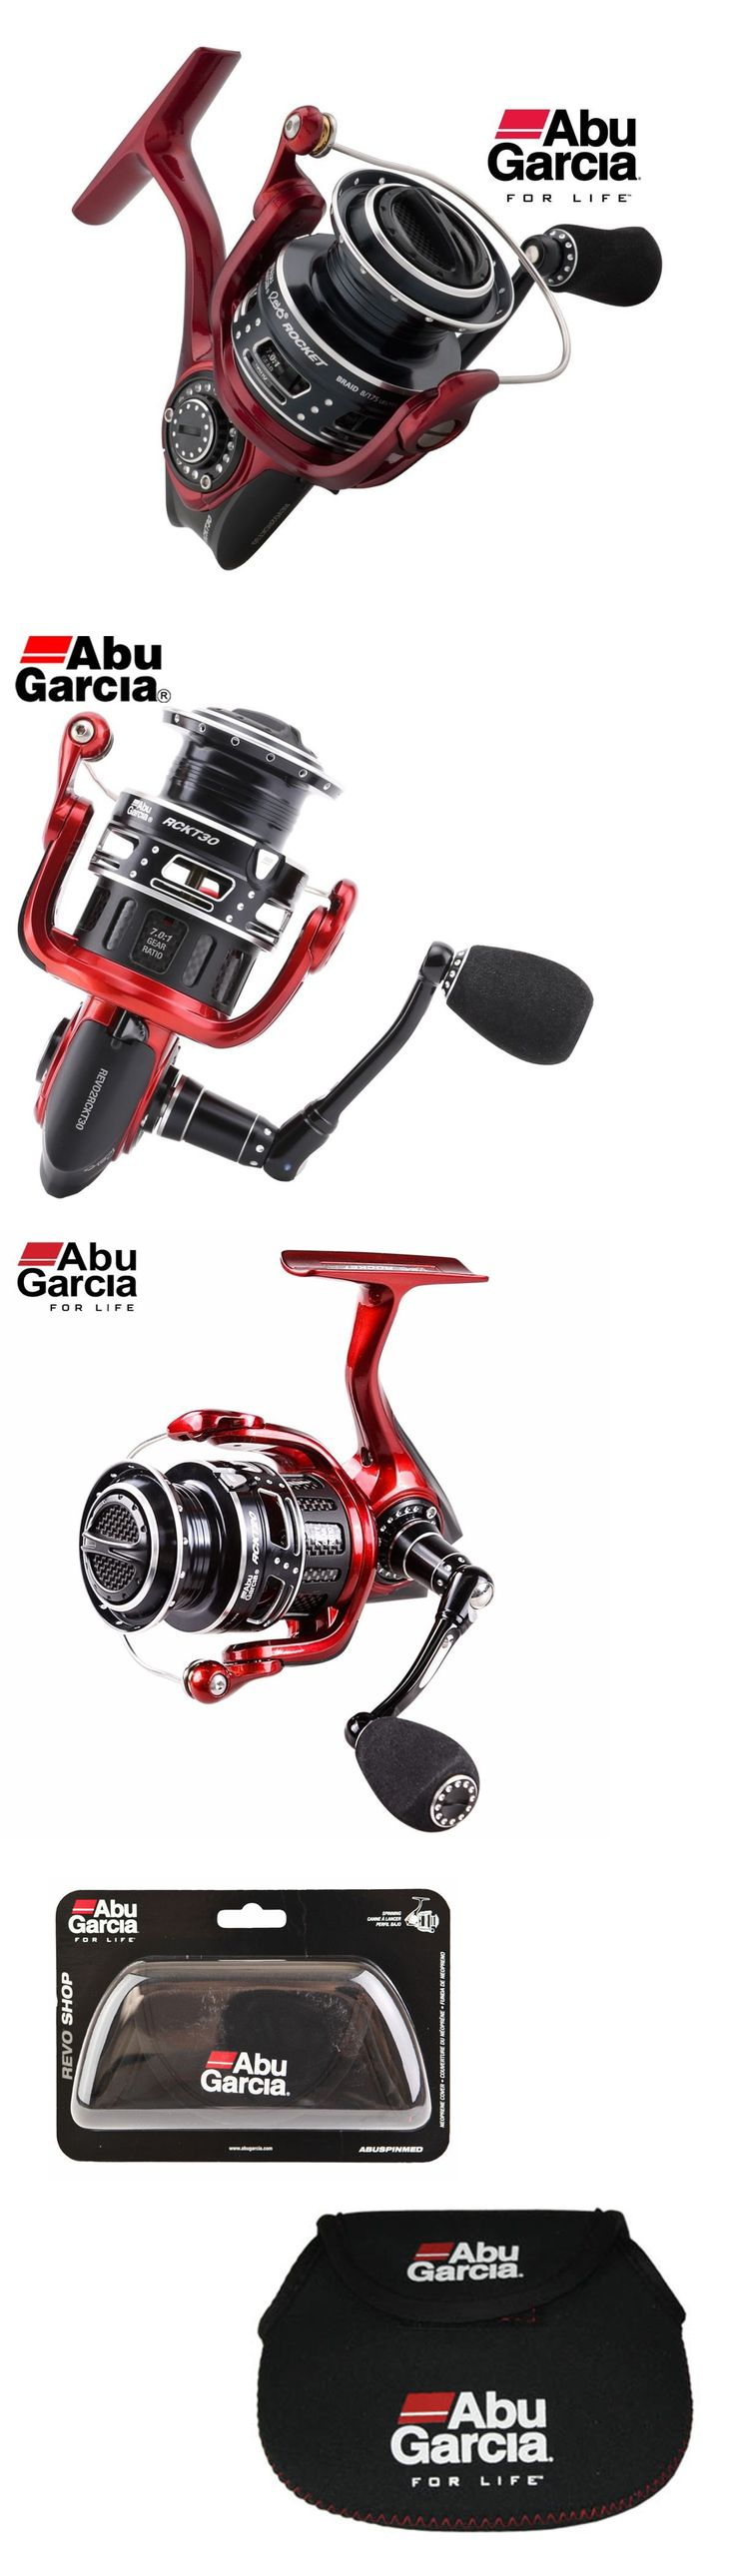 Spinning Reels 36147: New Abu Garcia Revo Rocket 30 Spinning Reel And Free Abu Garcia Reel Cover -> BUY IT NOW ONLY: $159 on eBay!